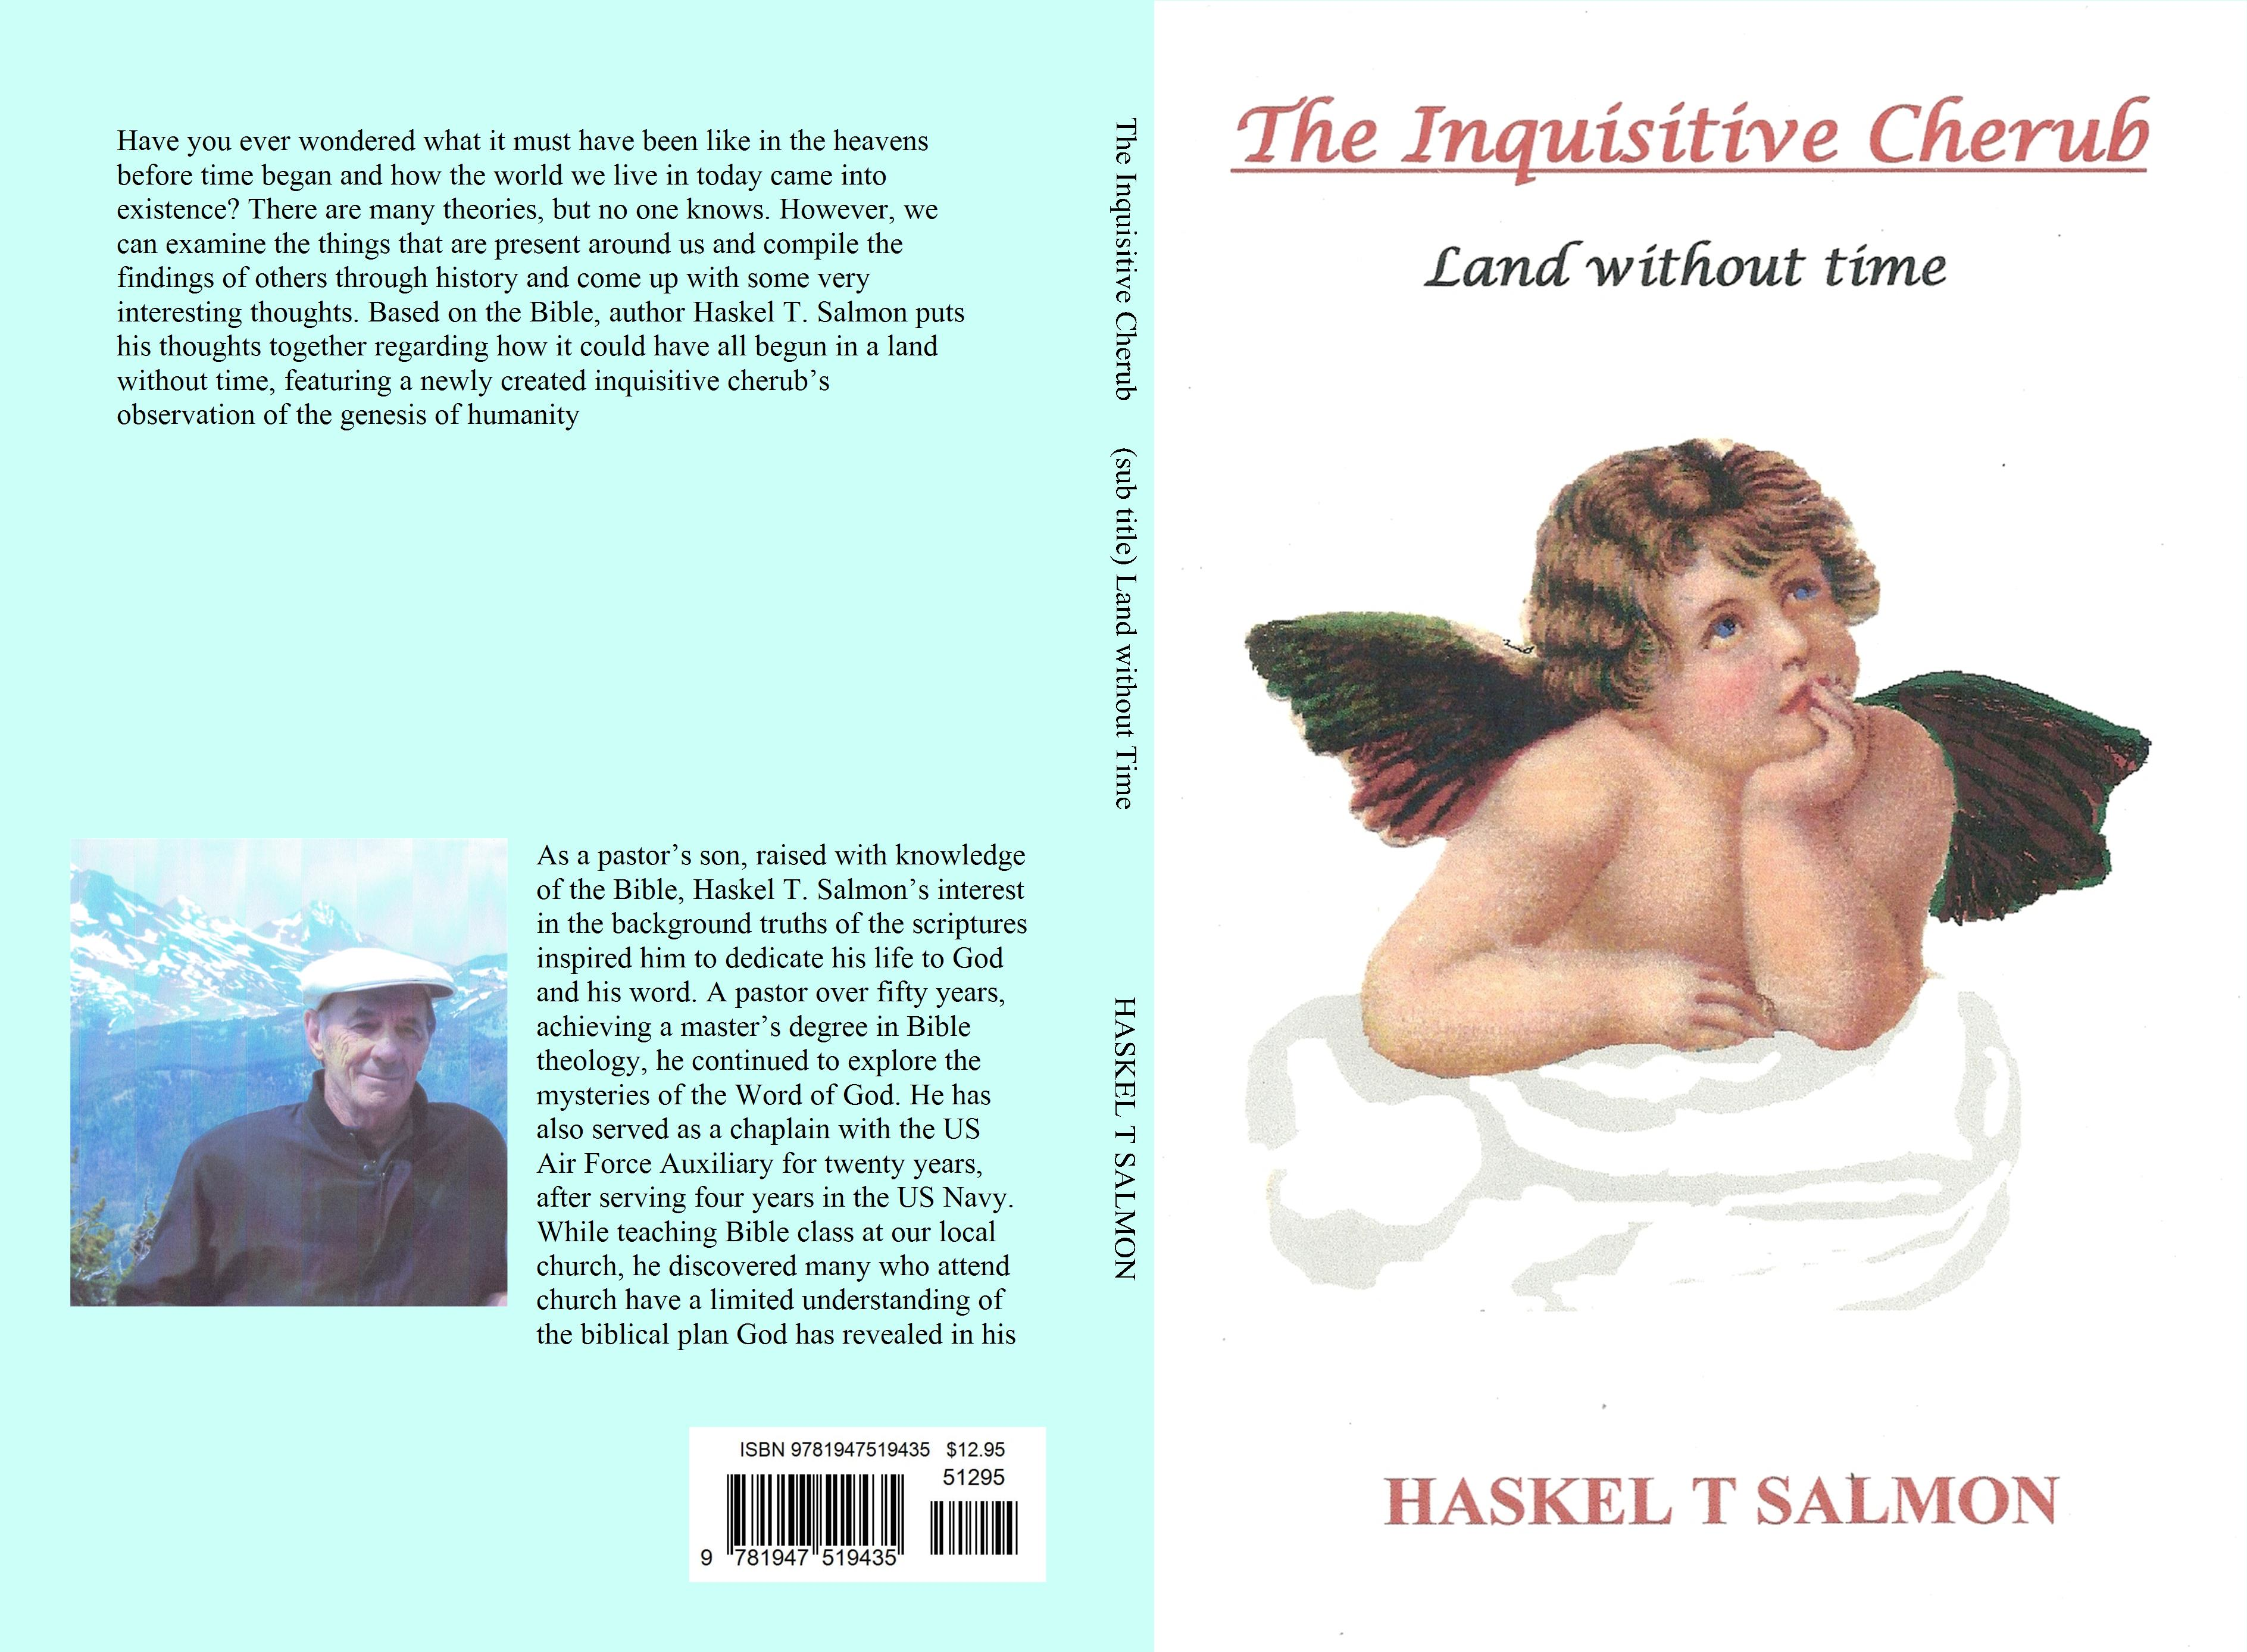 The Inquisitive Cherub (sub title) Land without Time cover image